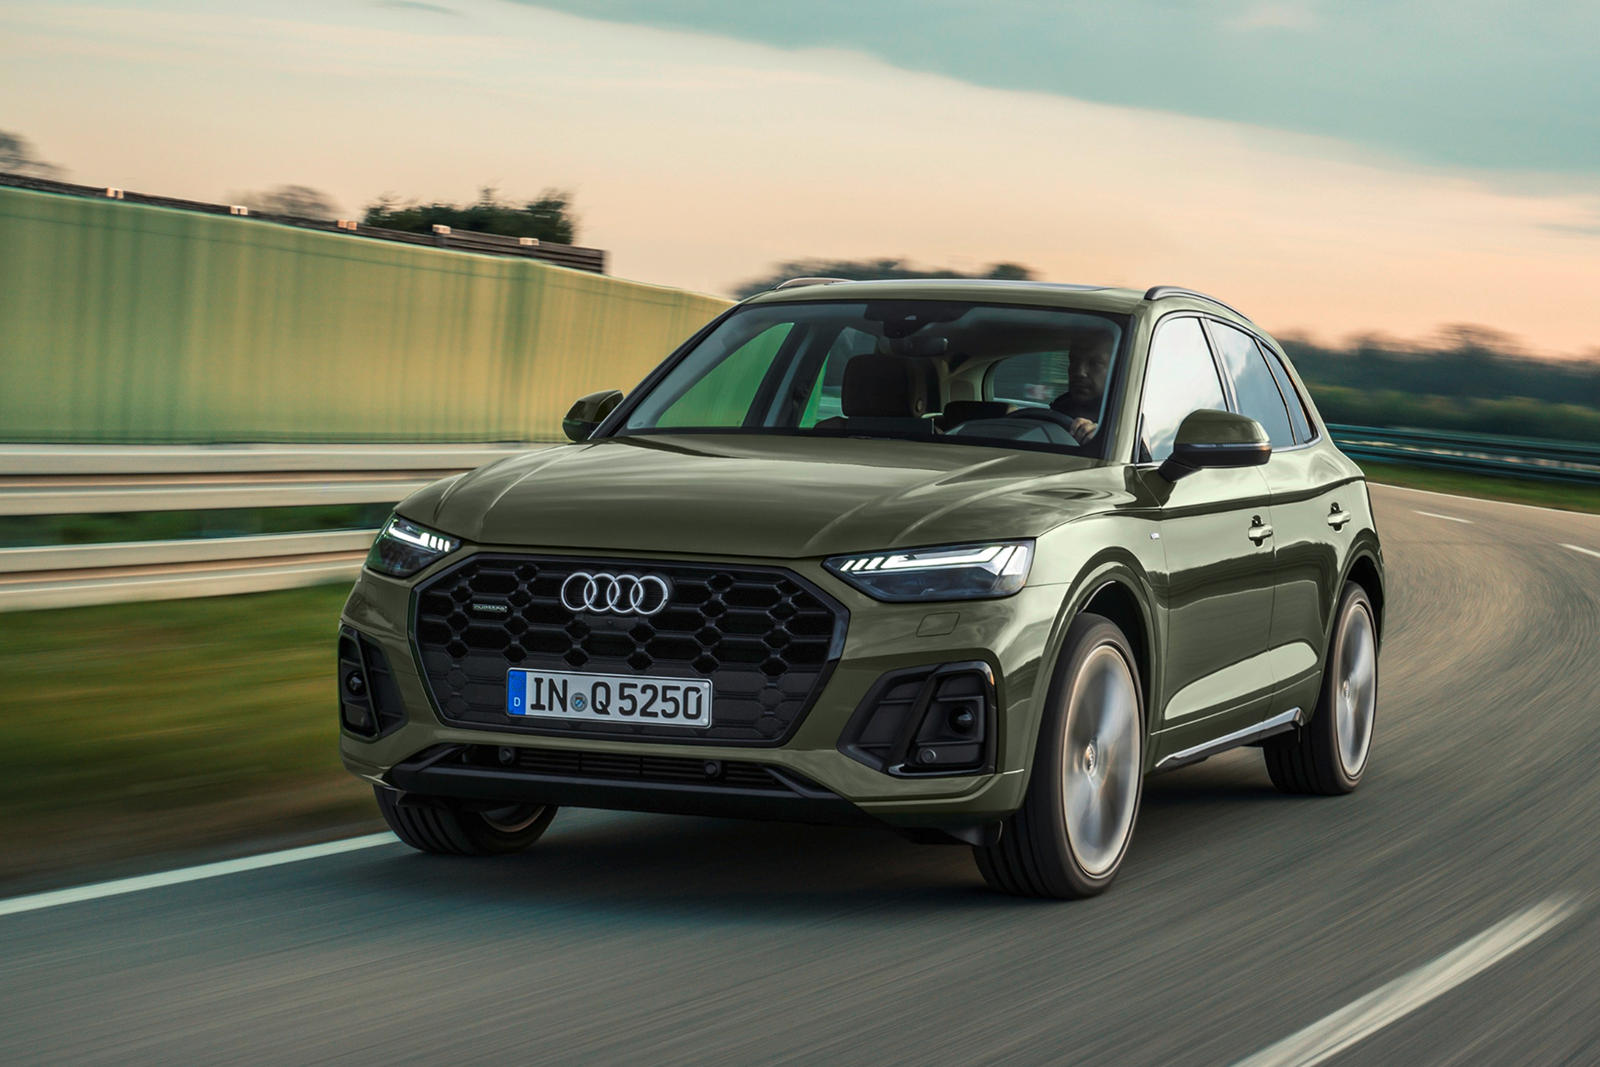 2021 Audi Q5 Arrives With Sharper Looks And Improved Tech Carbuzz